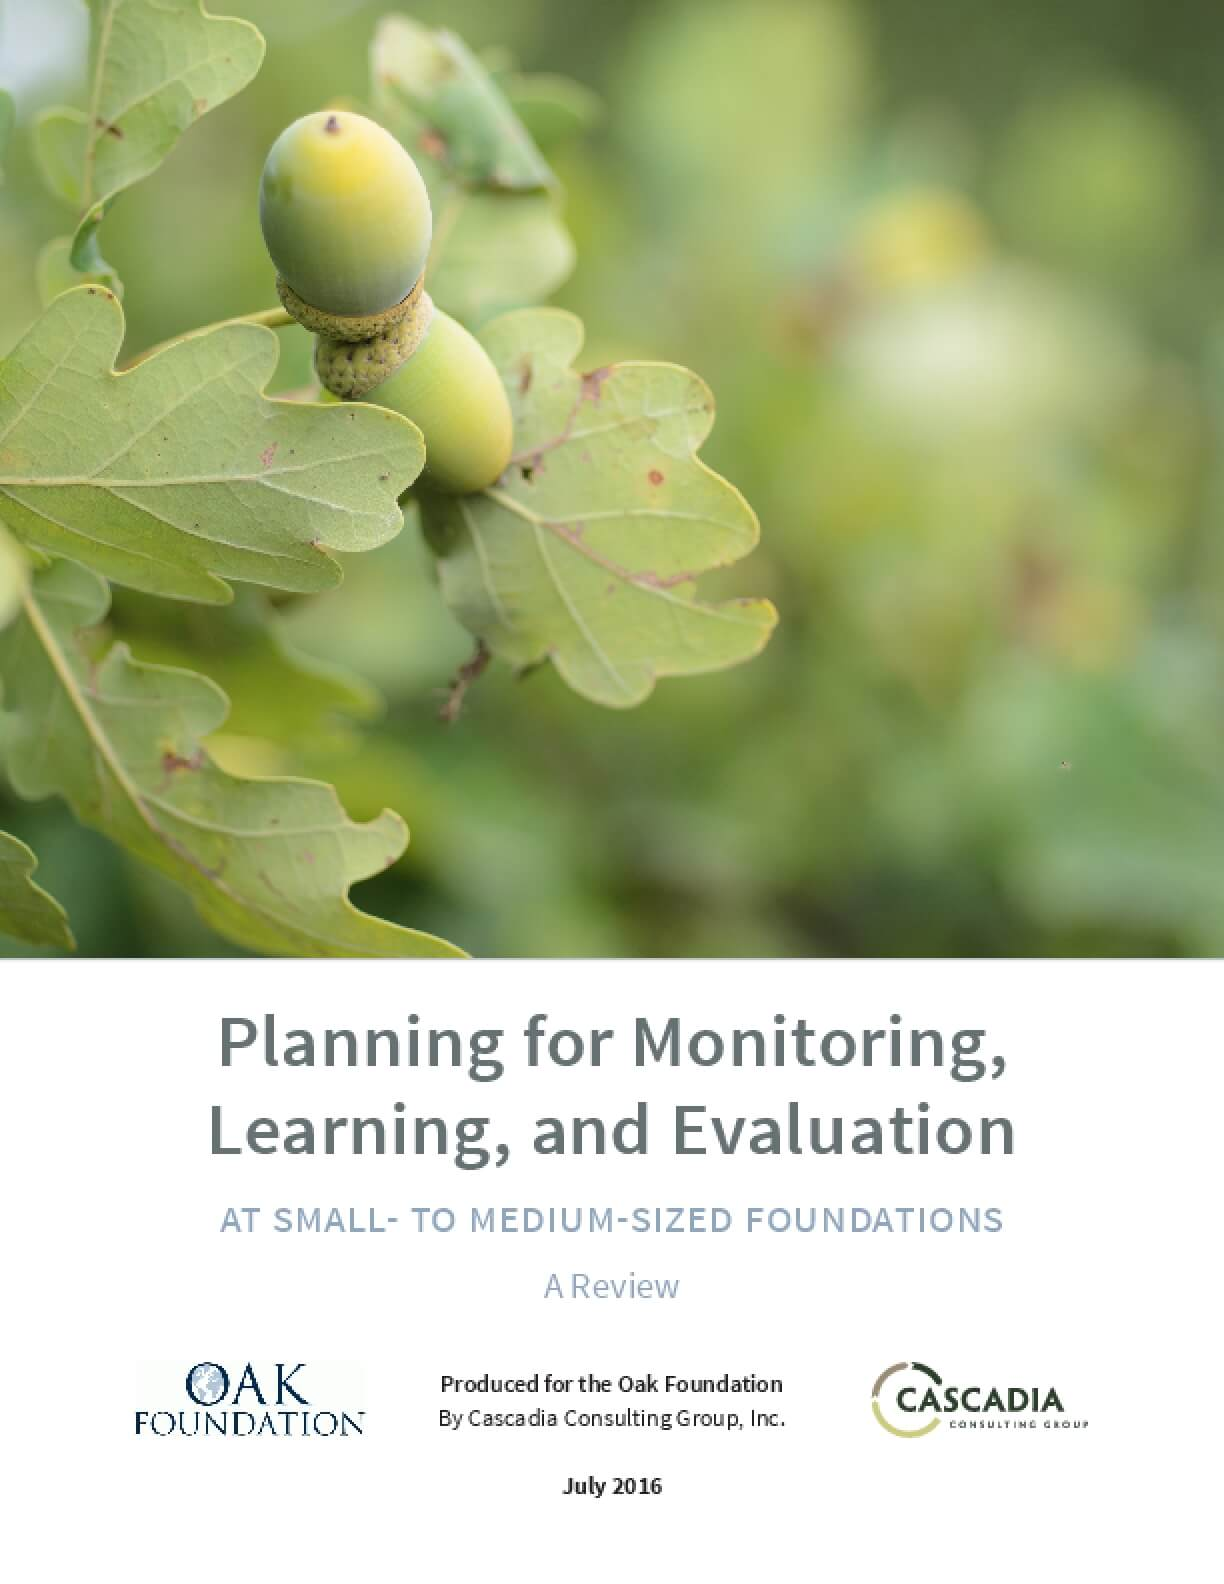 Planning for Monitoring, Learning, and Evaluation at Small- to Medium-Sized Foundations